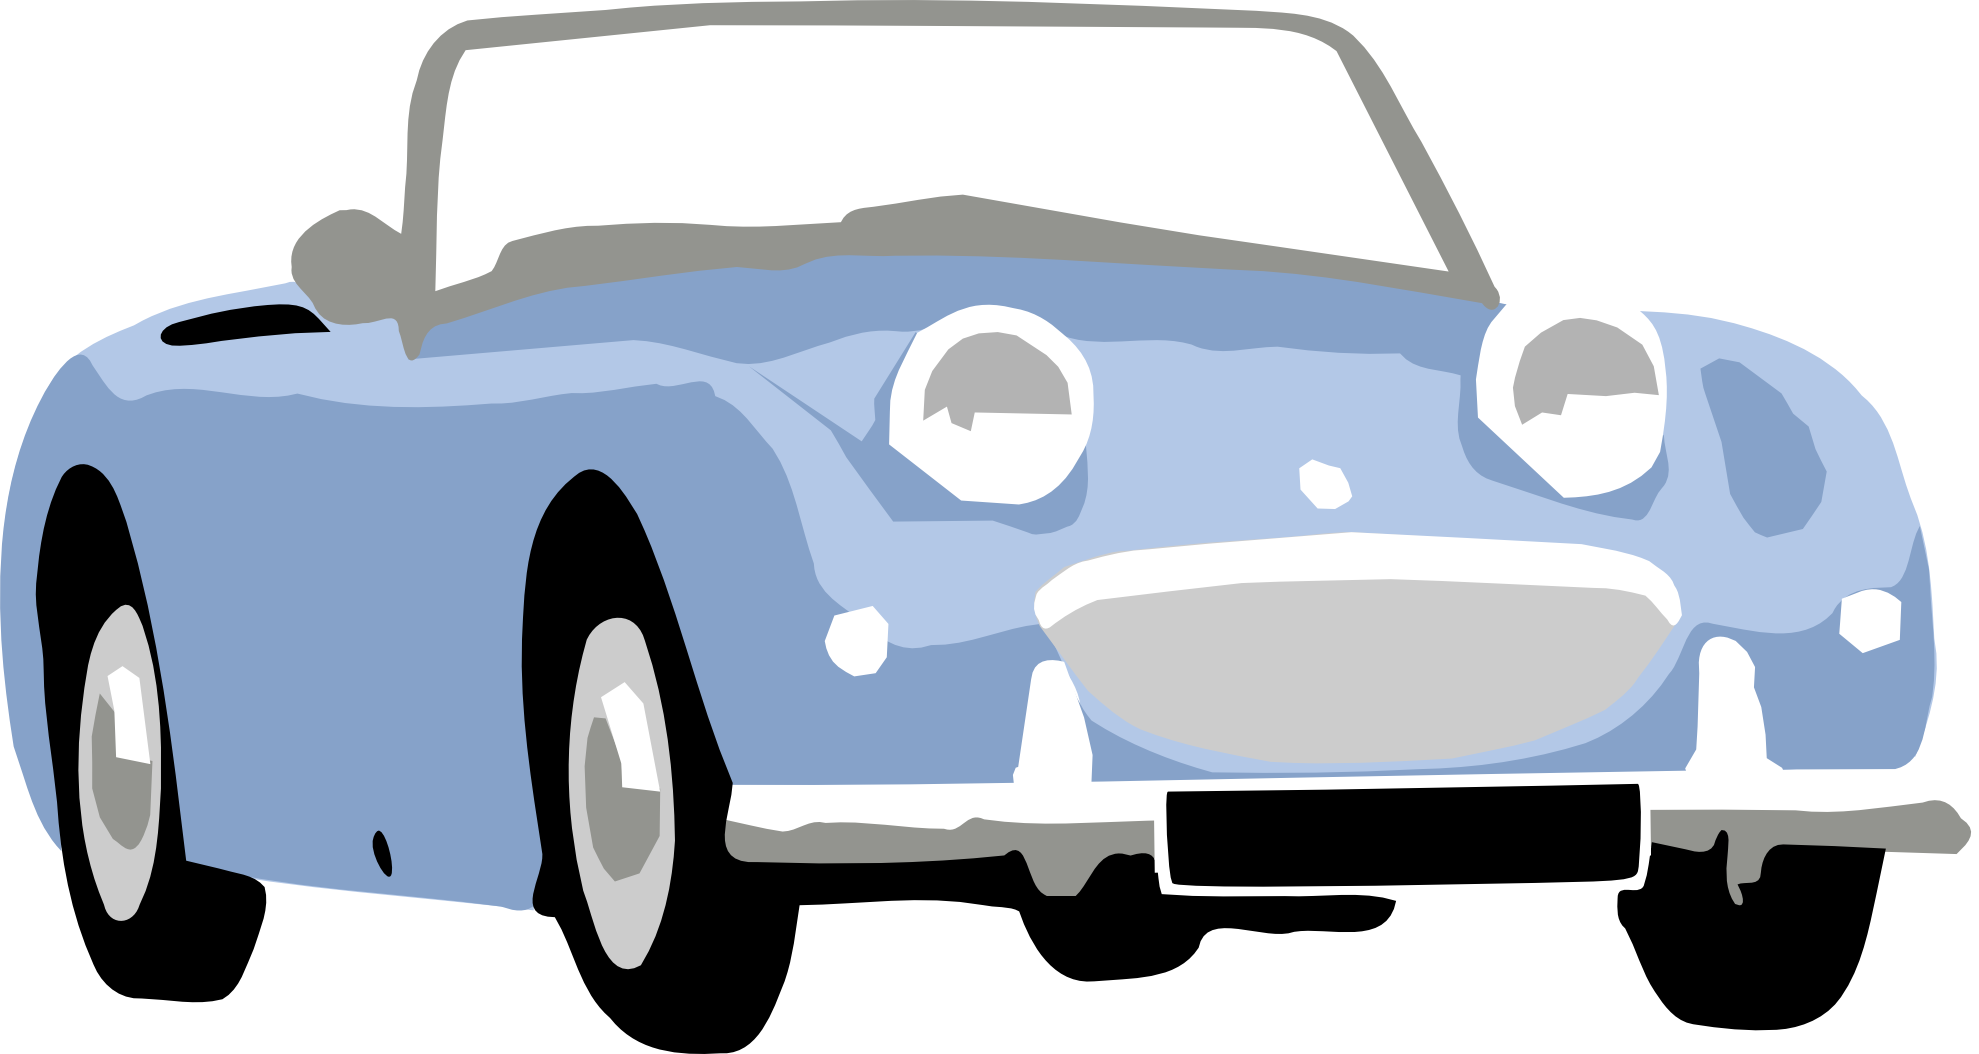 Broken car window clipart clip stock Hot Wheels Cars Clipart at GetDrawings.com | Free for personal use ... clip stock